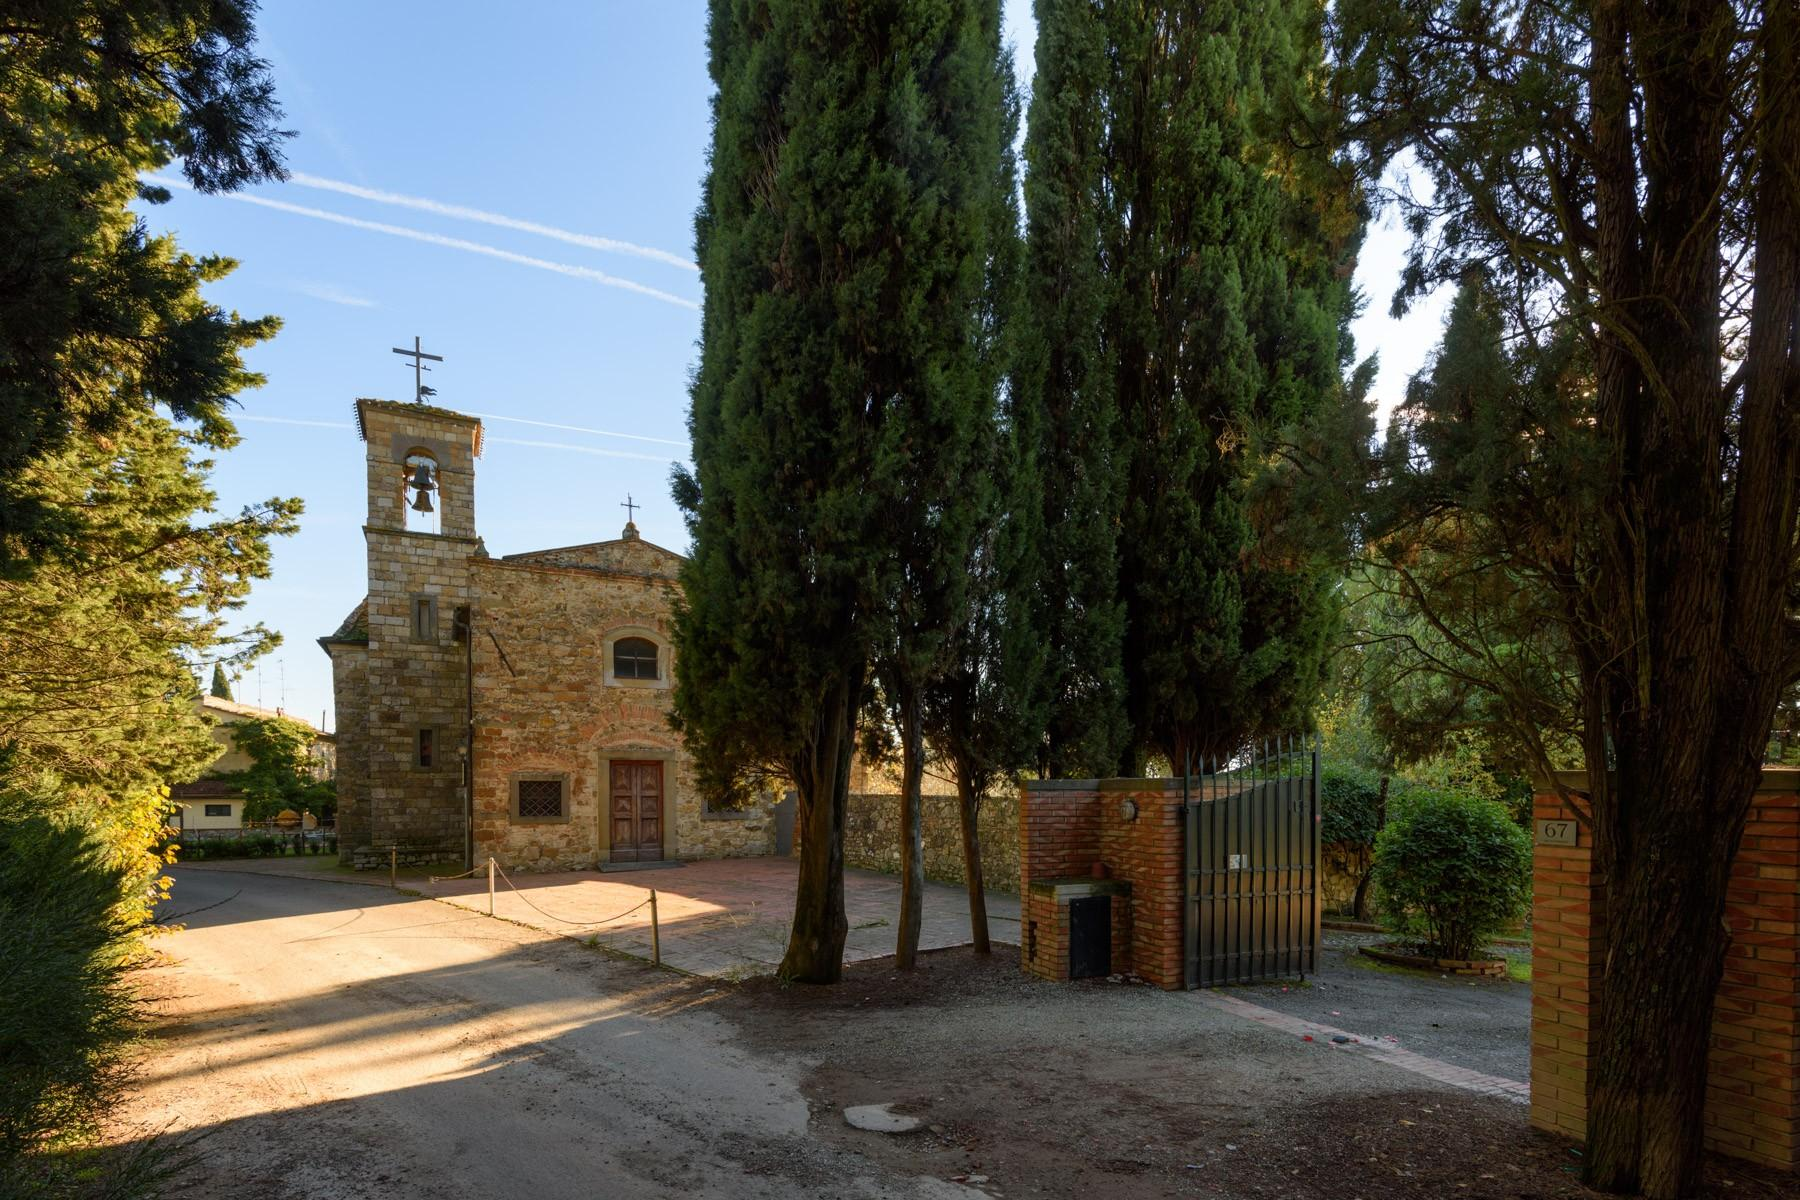 Marvelous villa in the chianti countryside - 5